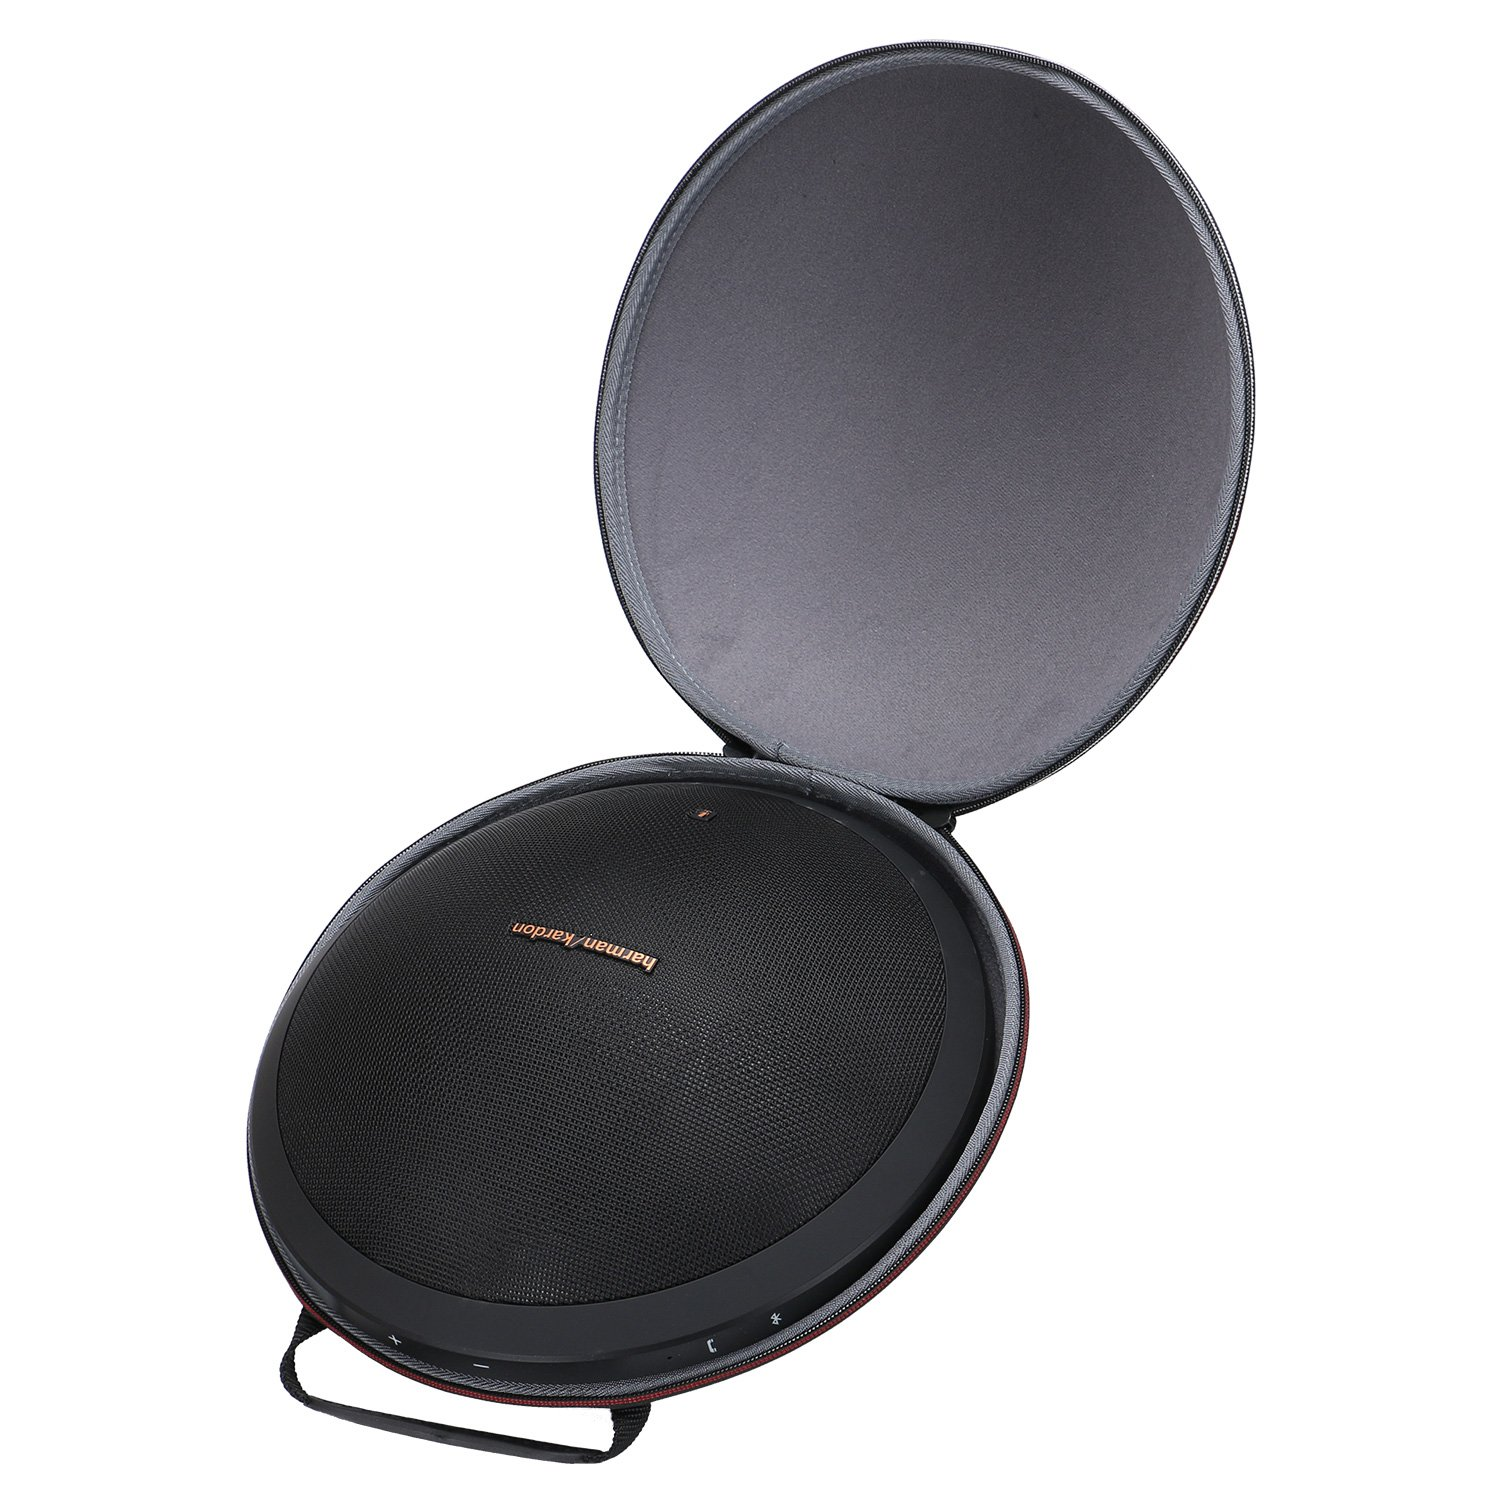 Back To Search Resultsconsumer Electronics Speaker Accessories 3 4 Wireless Bluetooth Speaker System. Full-portable Carrying Cover Case For Harman Kardon Onyx Studio 2